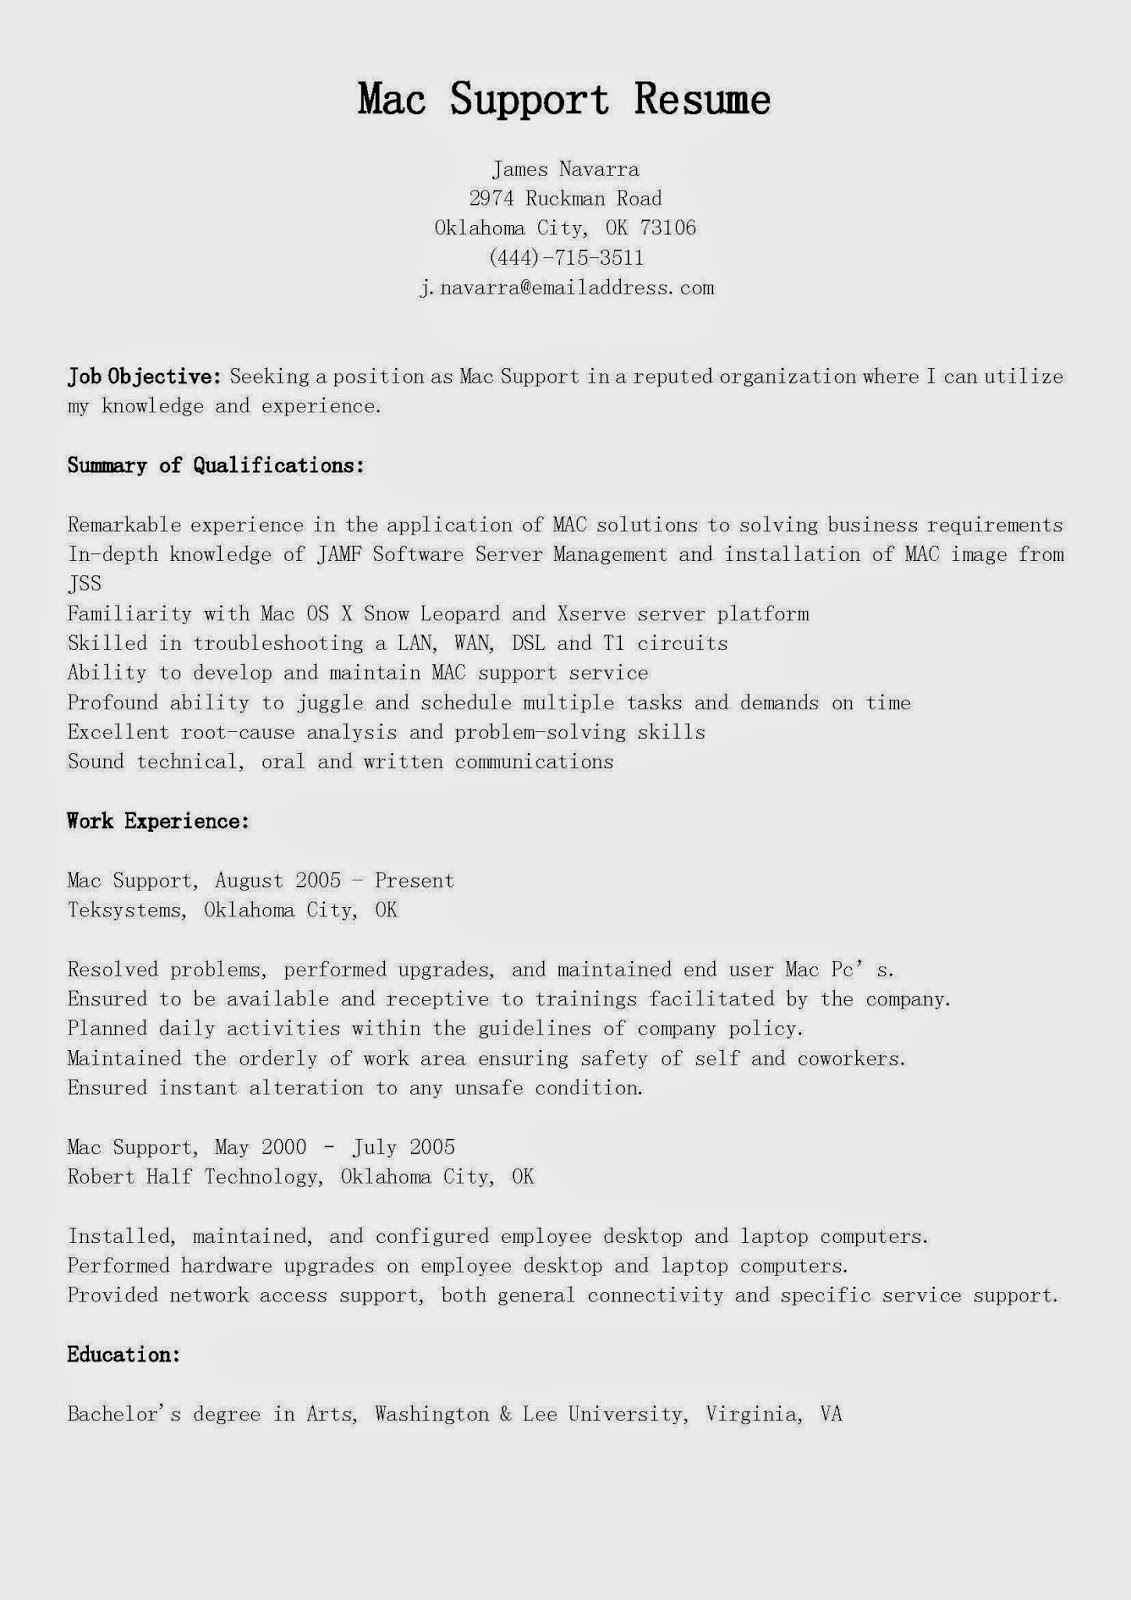 Free Resume Template For Mac Resume Samples Mac Support Resume Sample